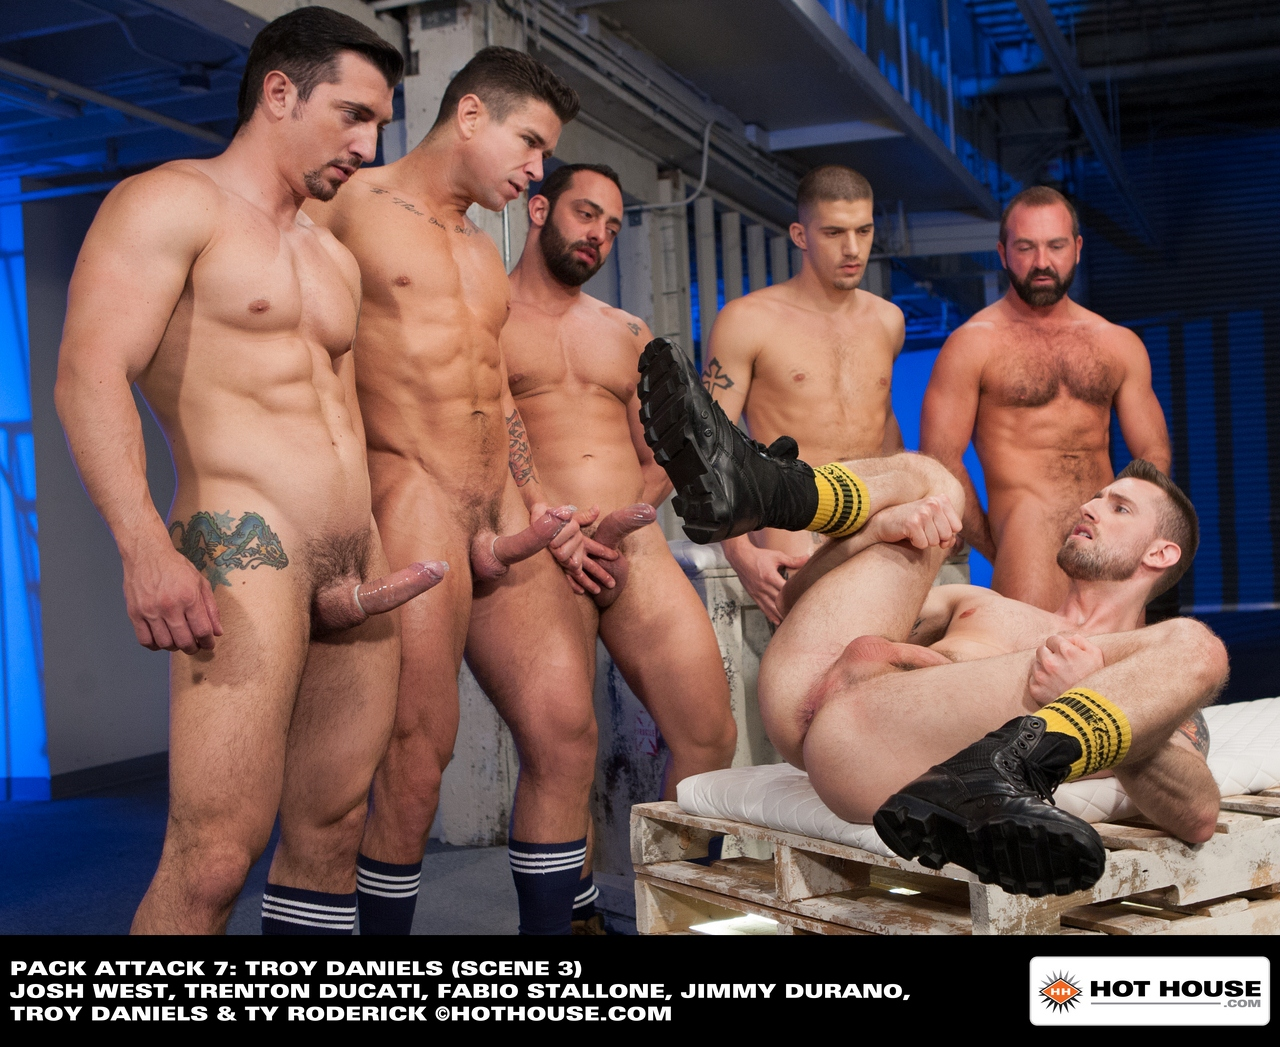 Gay monster porn story naked lovers